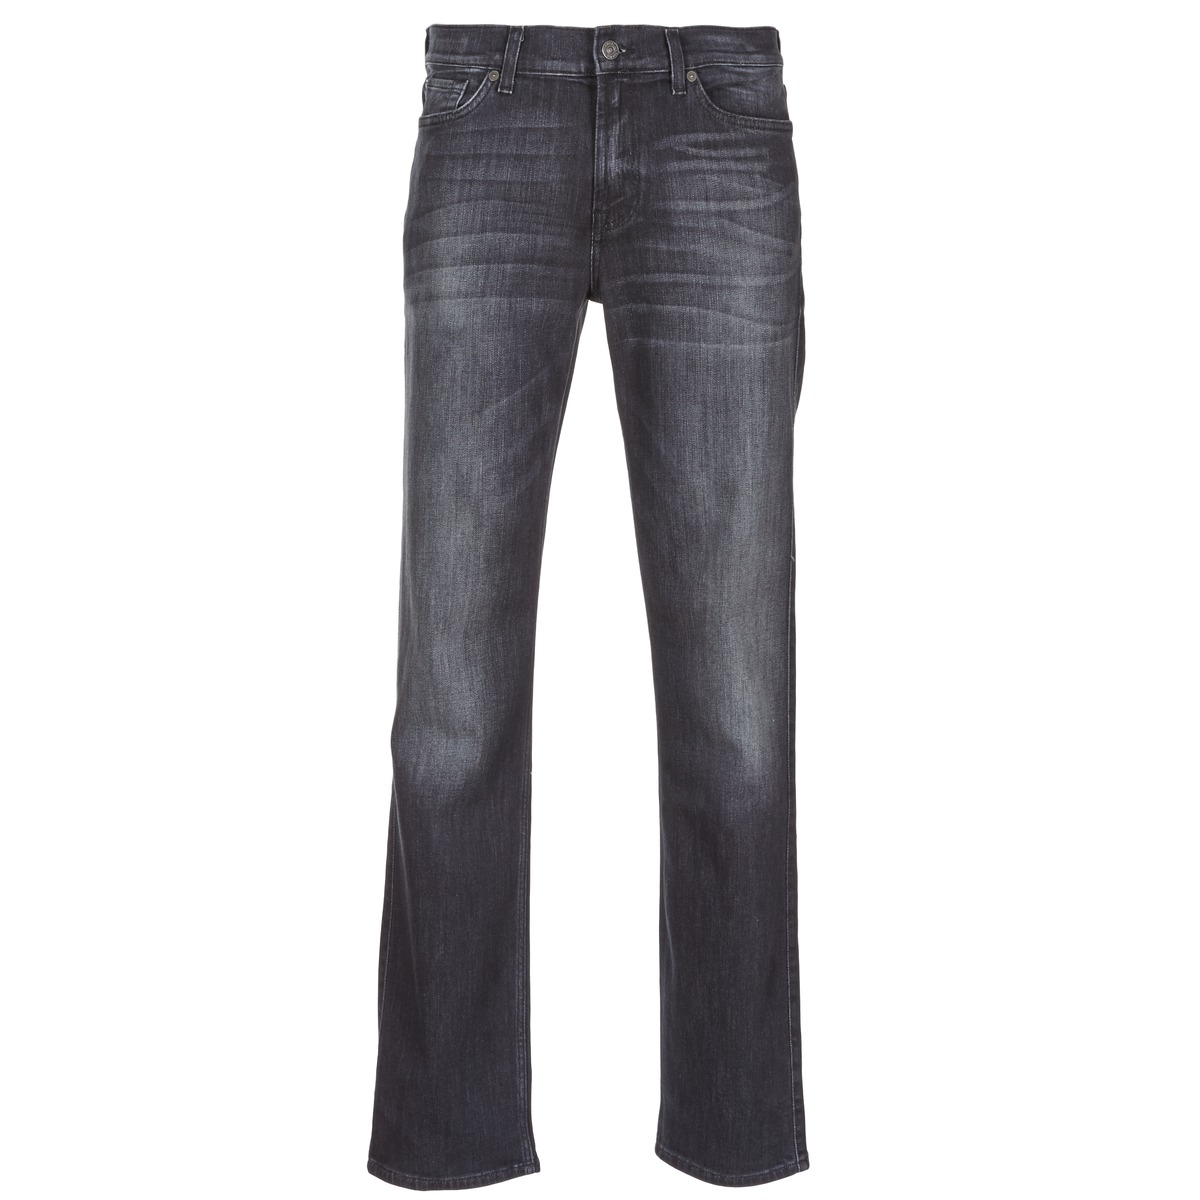 7 for all Mankind SLIMMY LUXE PERFORMANCE Grigio